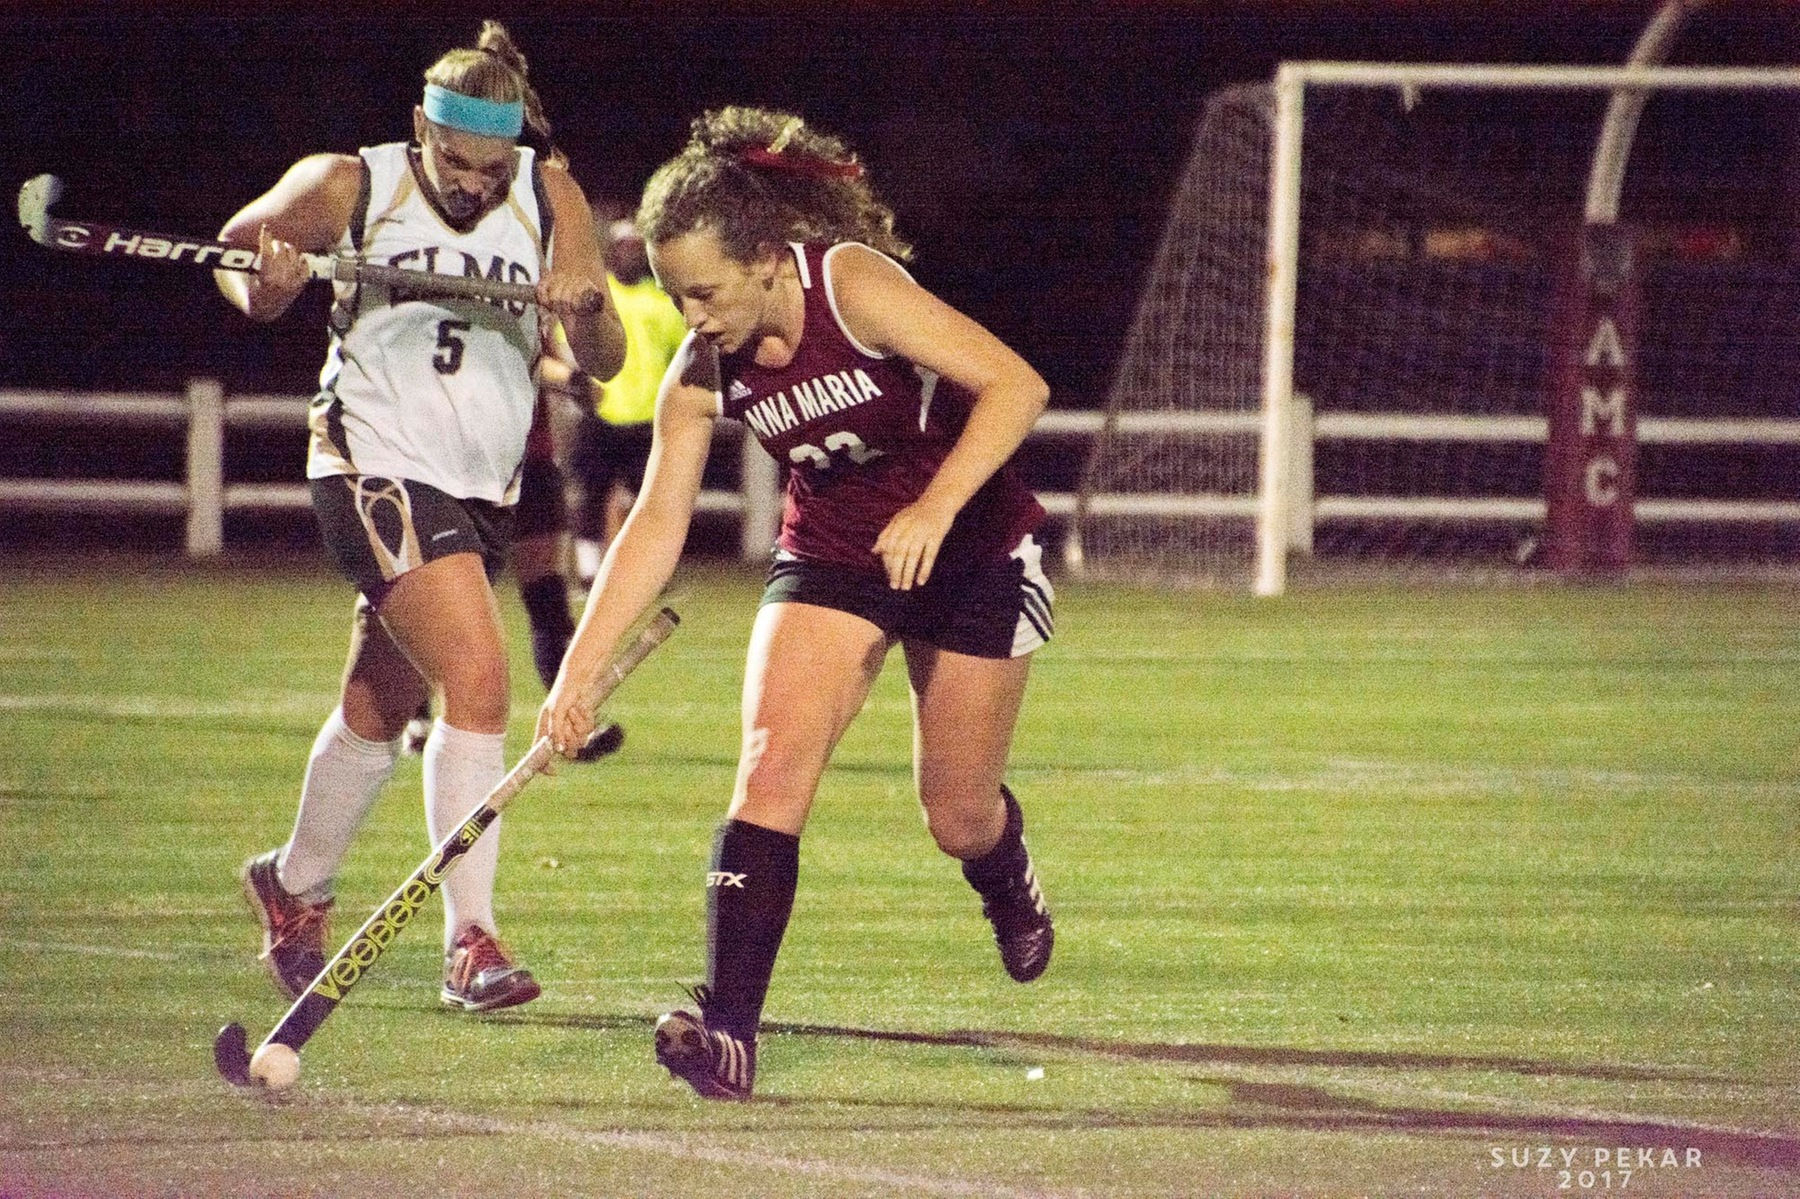 FIELD HOCKEY: Anna Maria falls to Mount Ida in GNAC contest